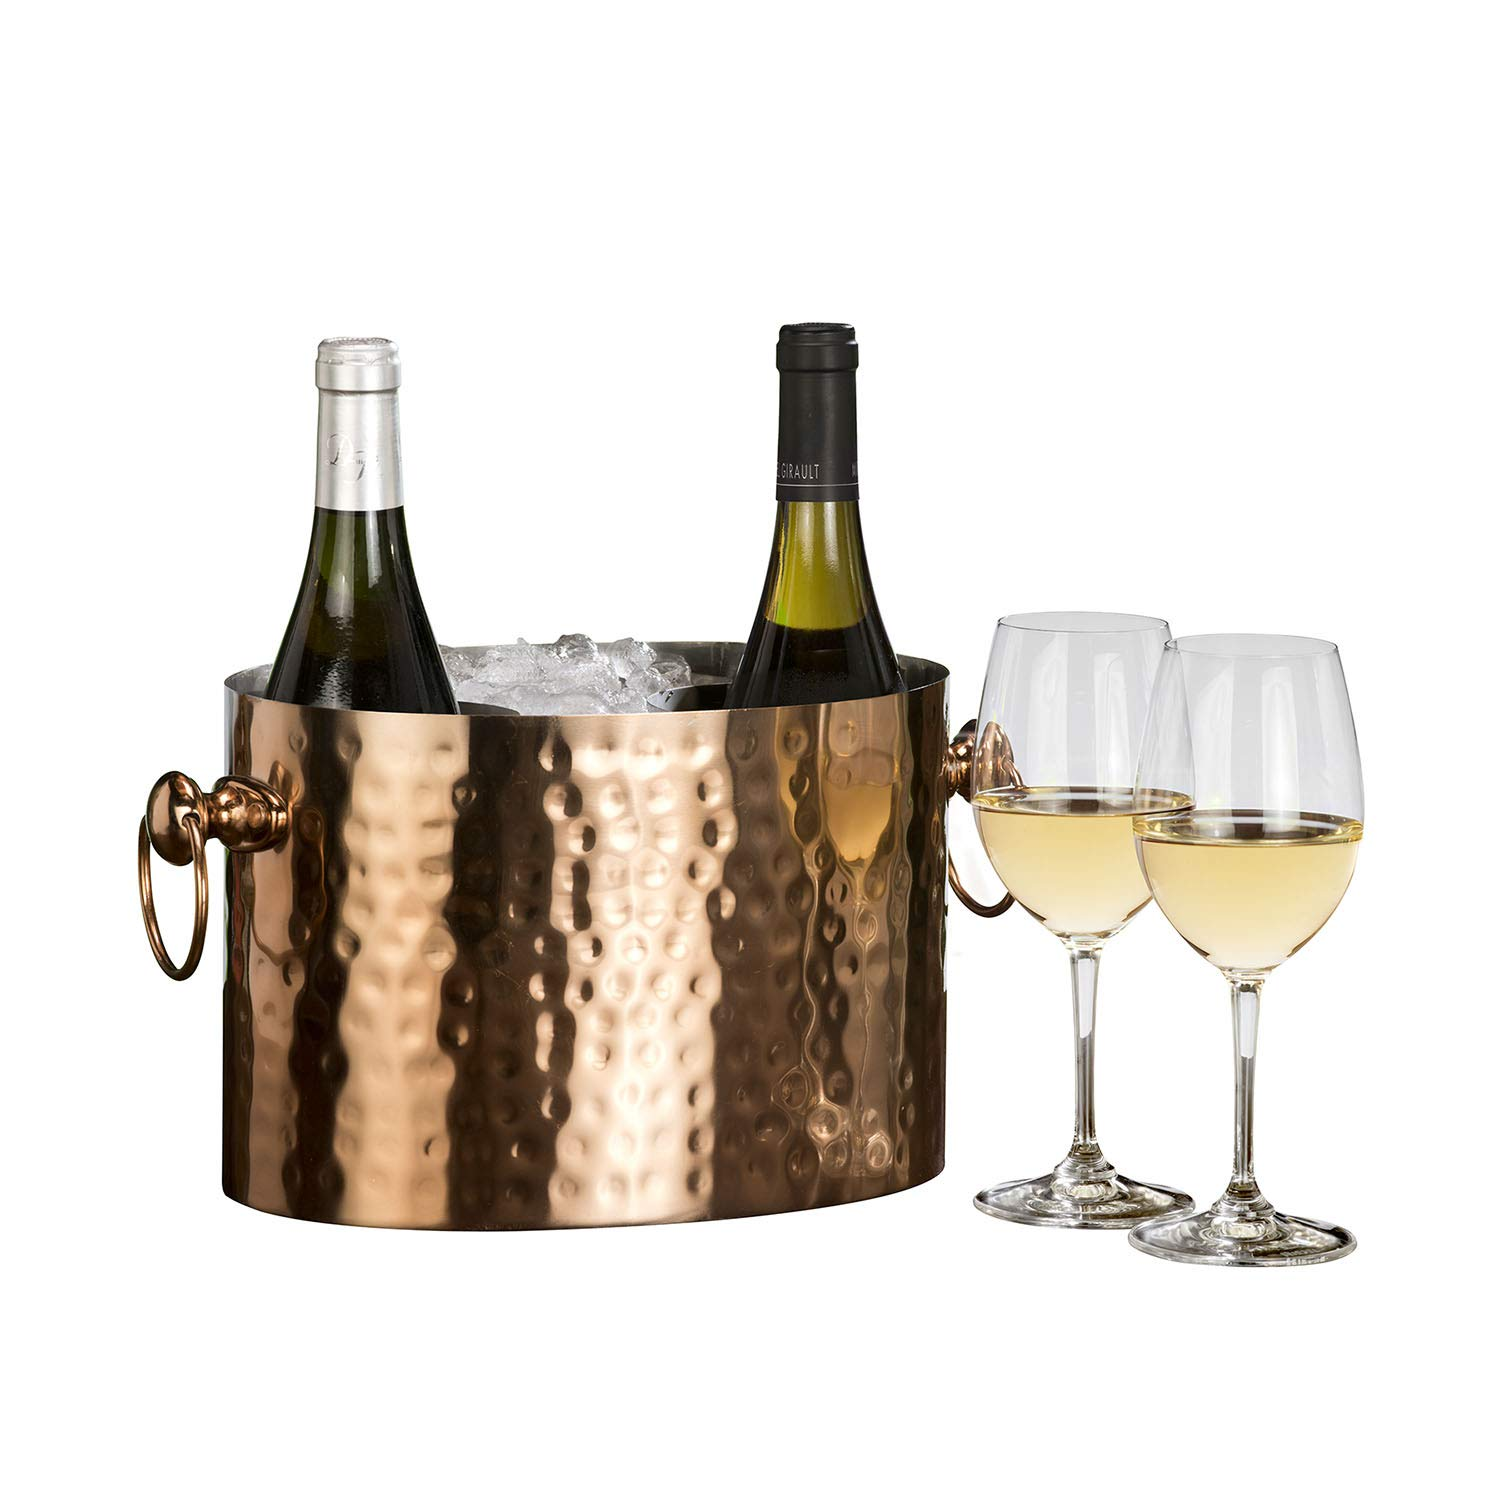 Chic Chill Handcrafted Artisan 2 bottle Champagne and Wine Chiller (Copper)